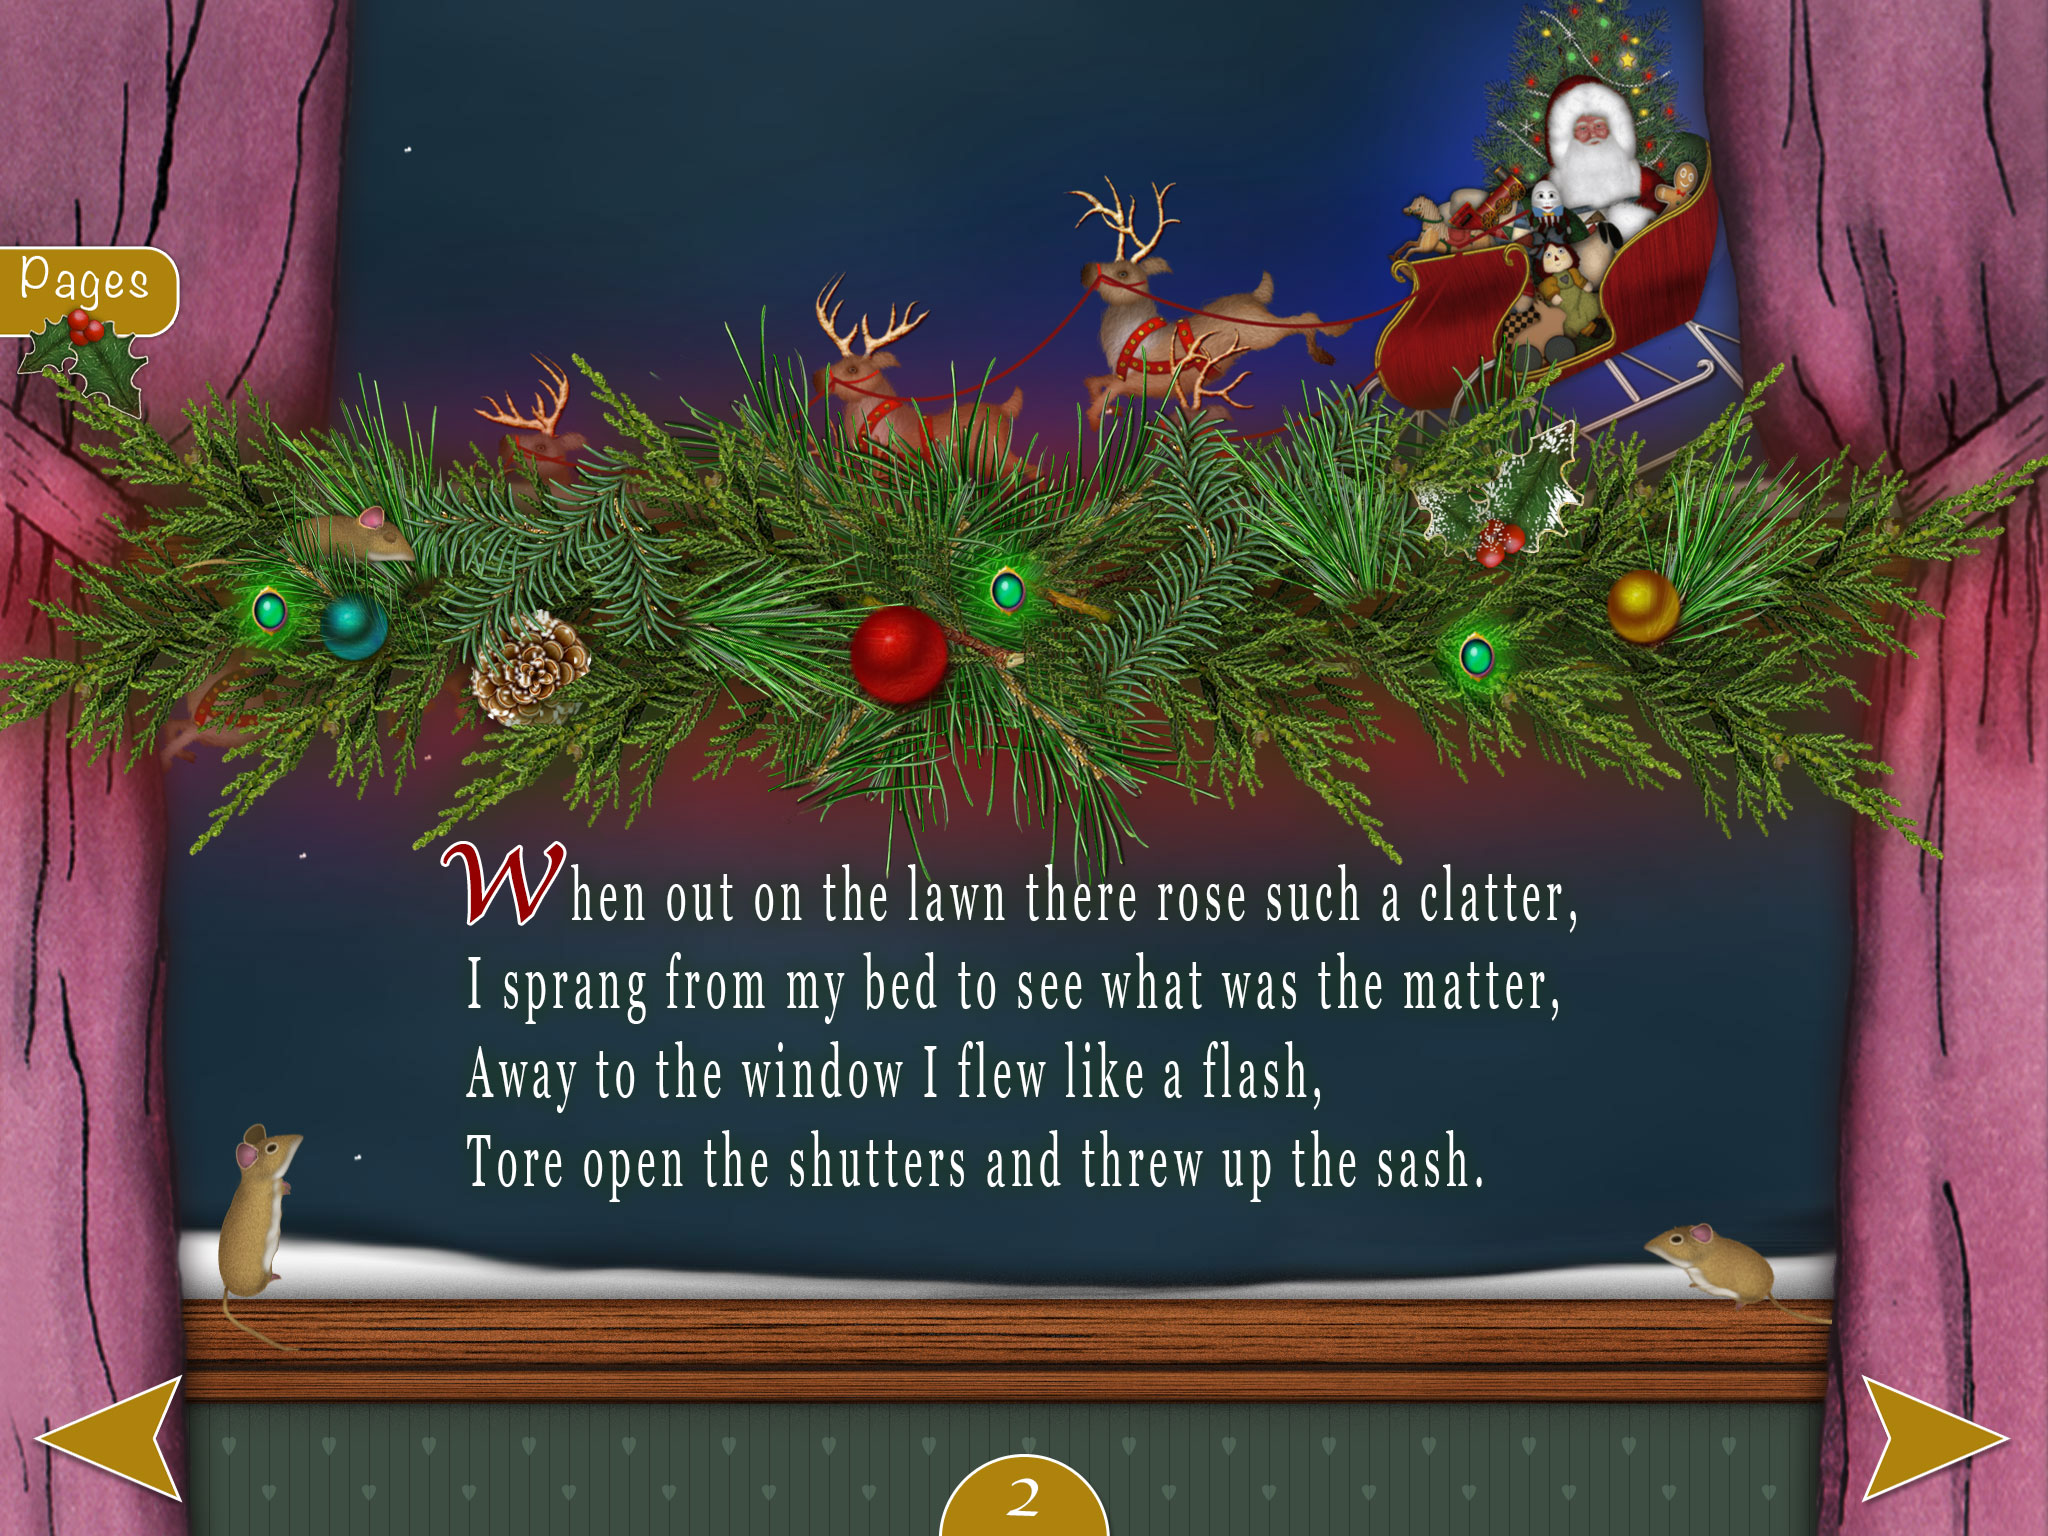 T'was The Night Before Christmas - An Interactive Classic - Kwiksher